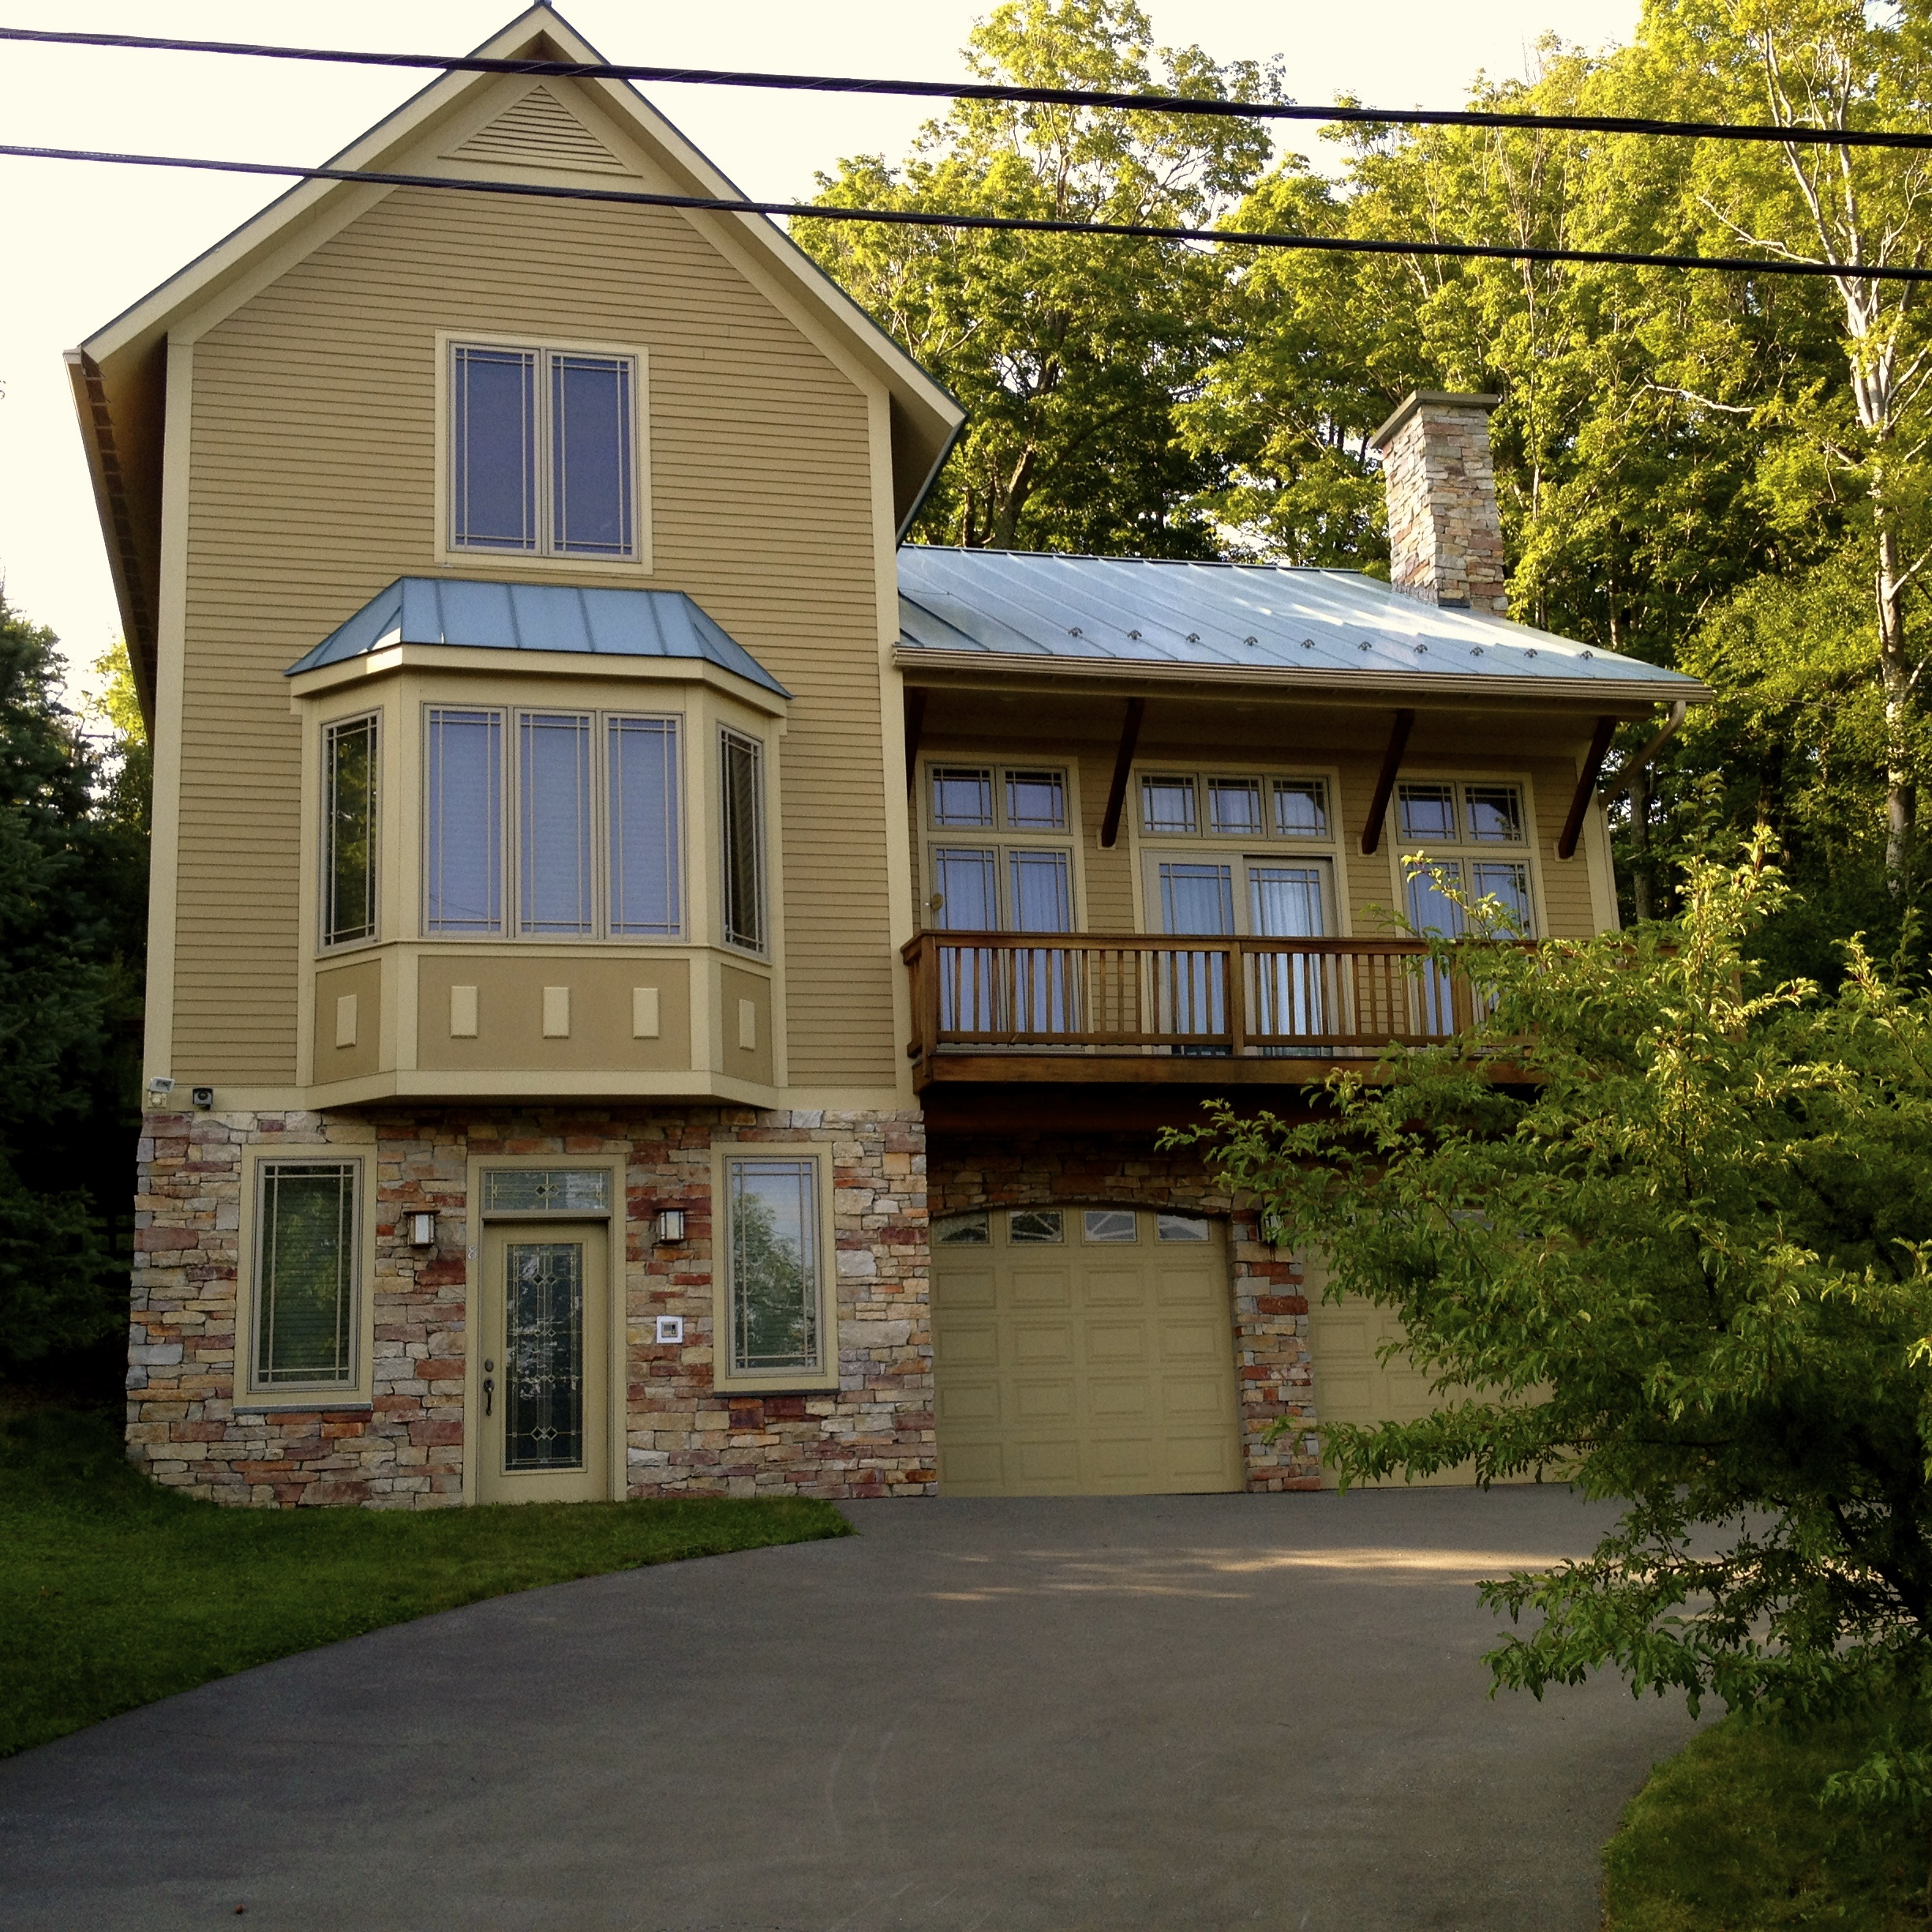 House with heated driveway - Sugarbush Resort, VT